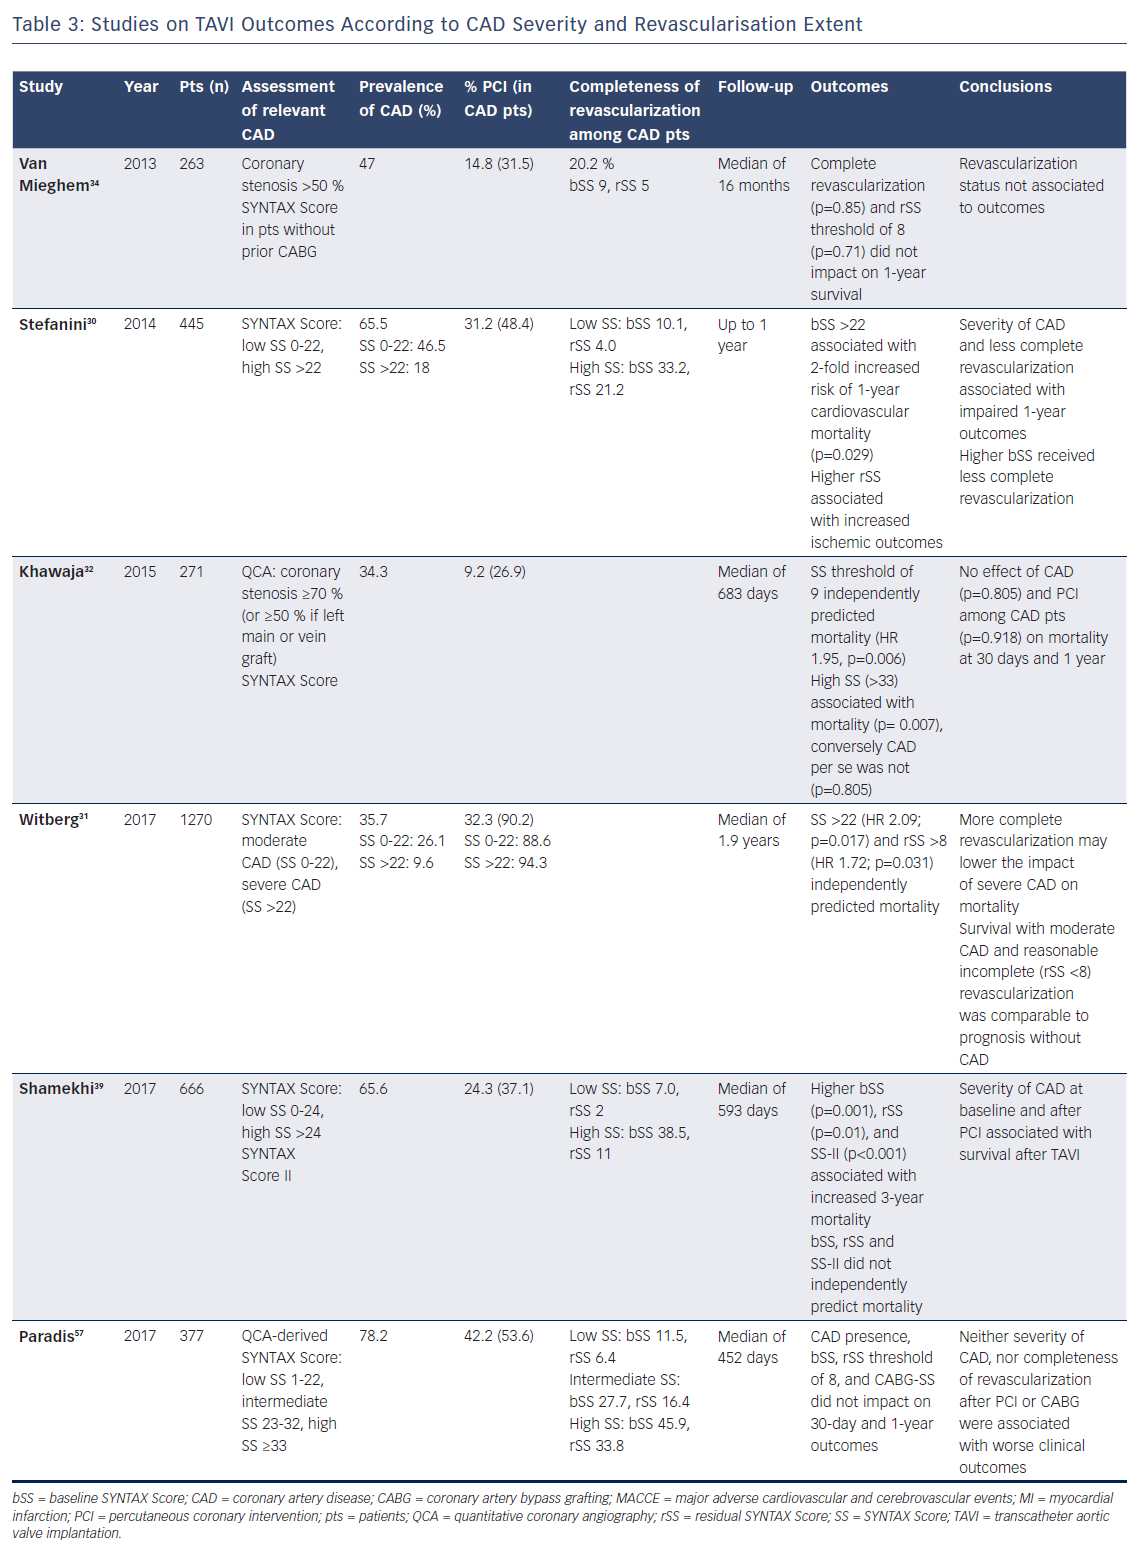 Table 3: Studies on TAVI Outcomes According to CAD Severity and Revascularisation Extent